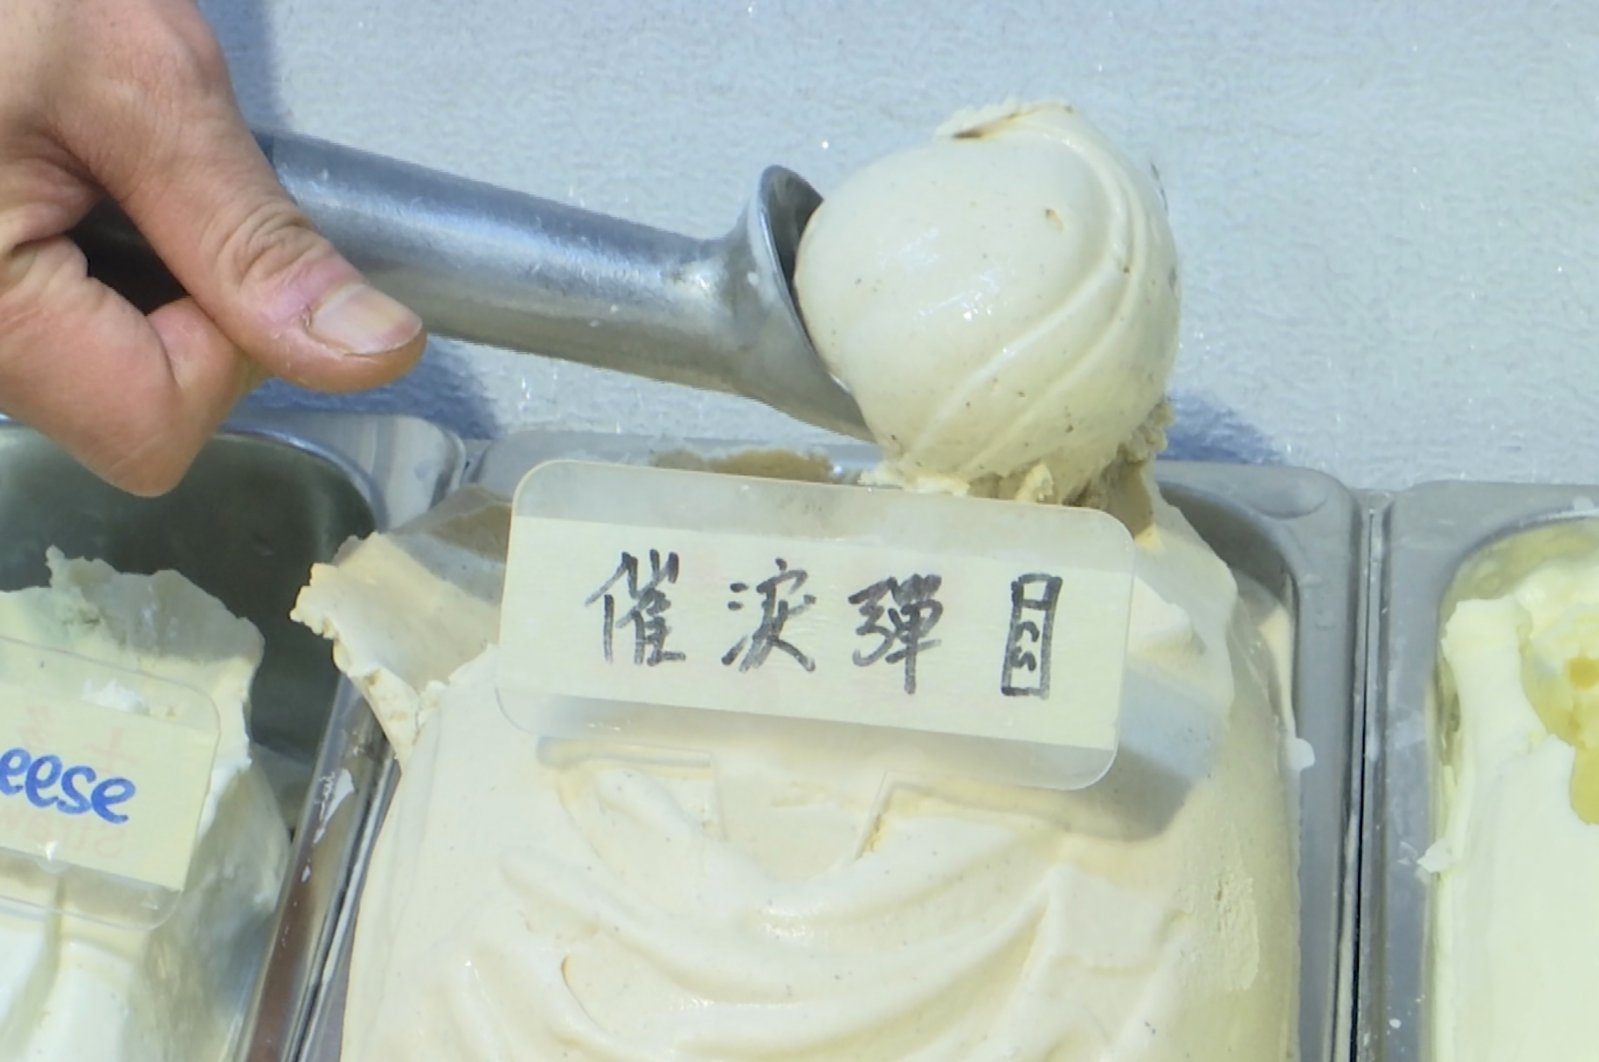 A scoop of tear gas flavored ice cream, in Hong Kong, May 4, 2020. (AP Photo)